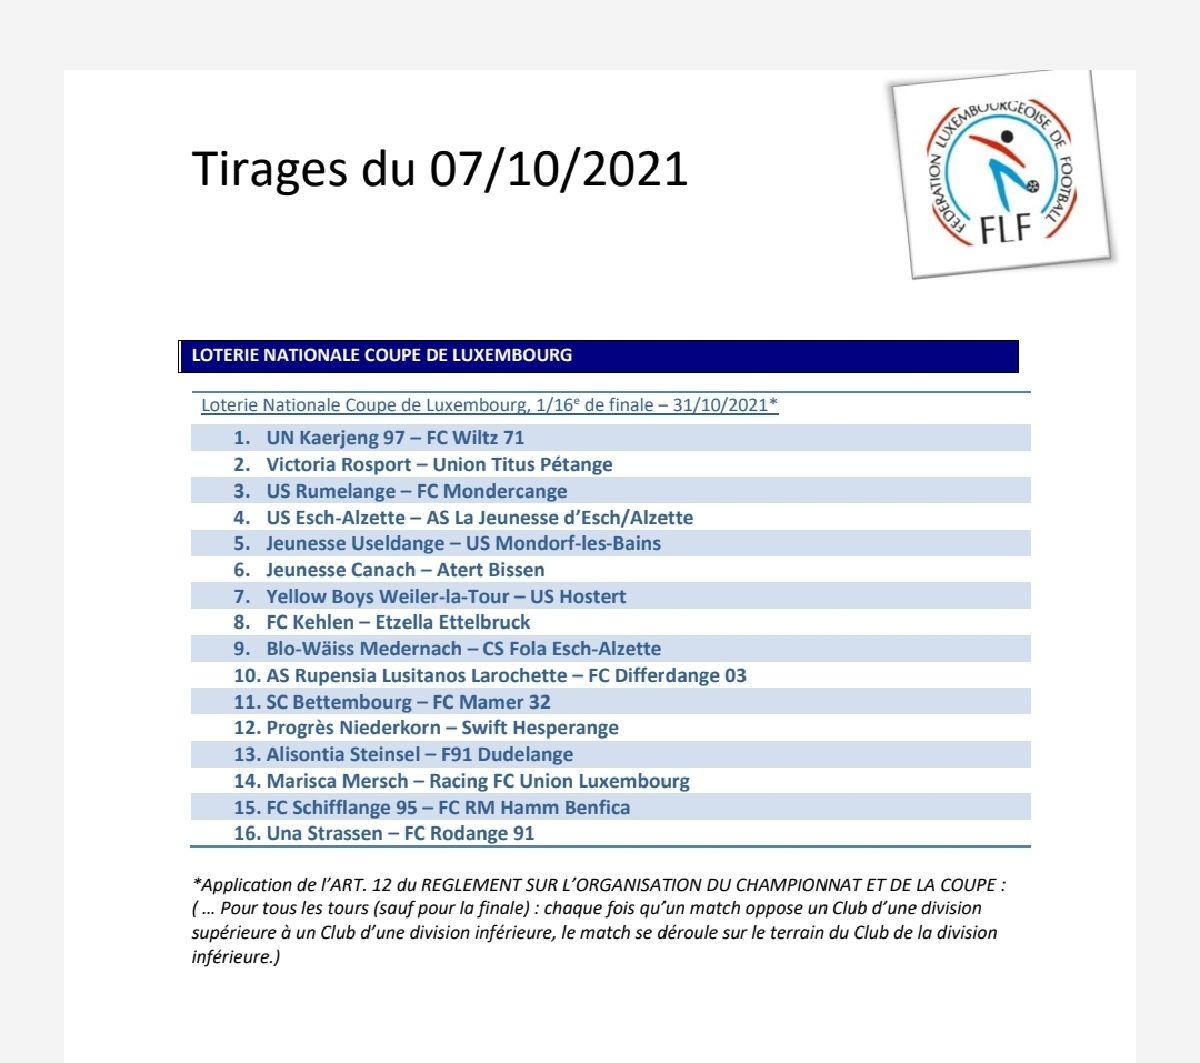 Tirage Coupe de Luxembourg